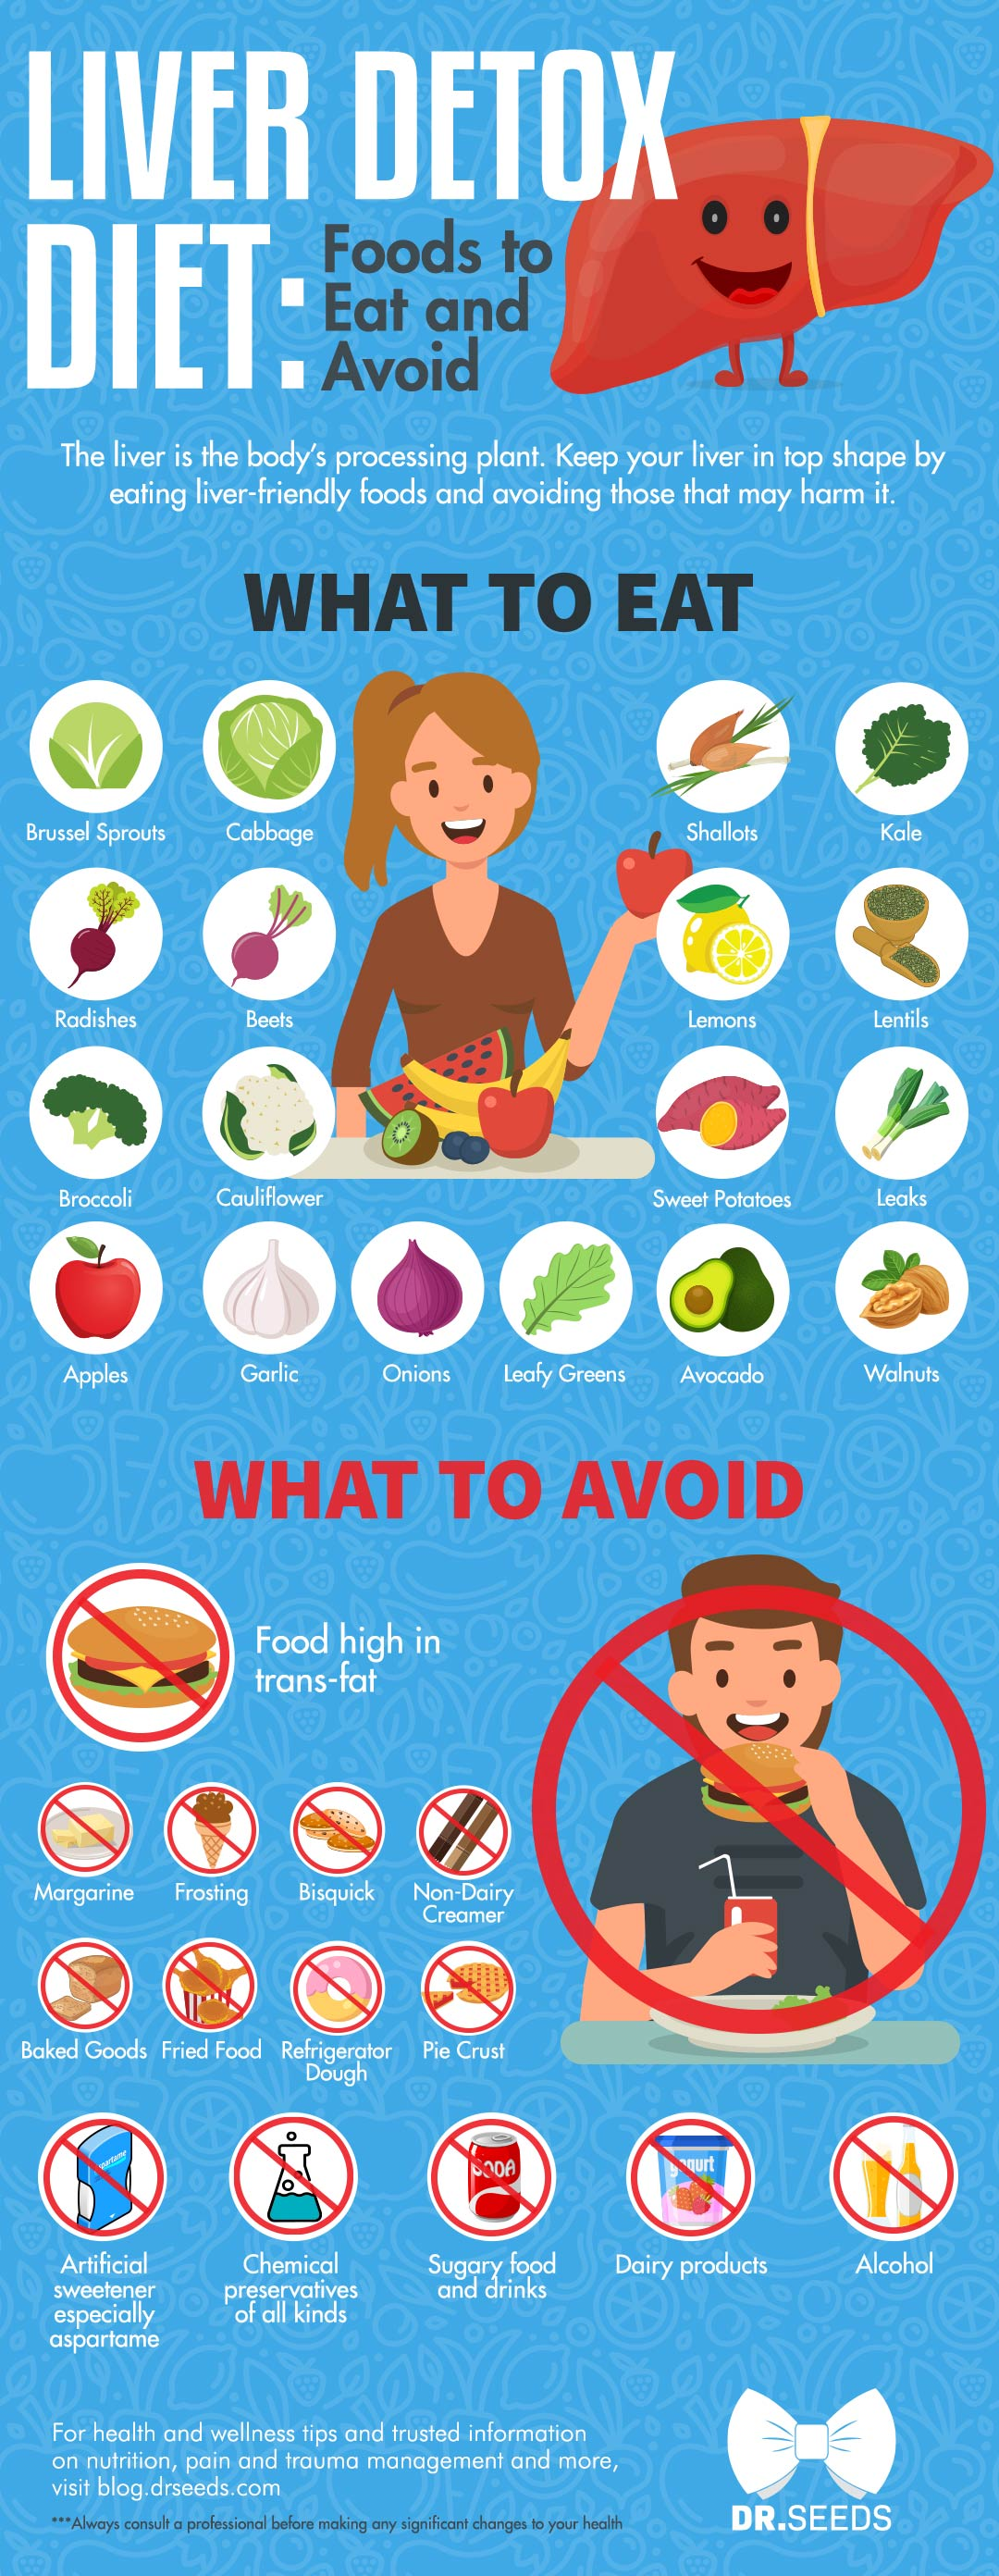 Liver Detox Diet | Foods To Eat And Avoid #infographic #Food #Diet #Health